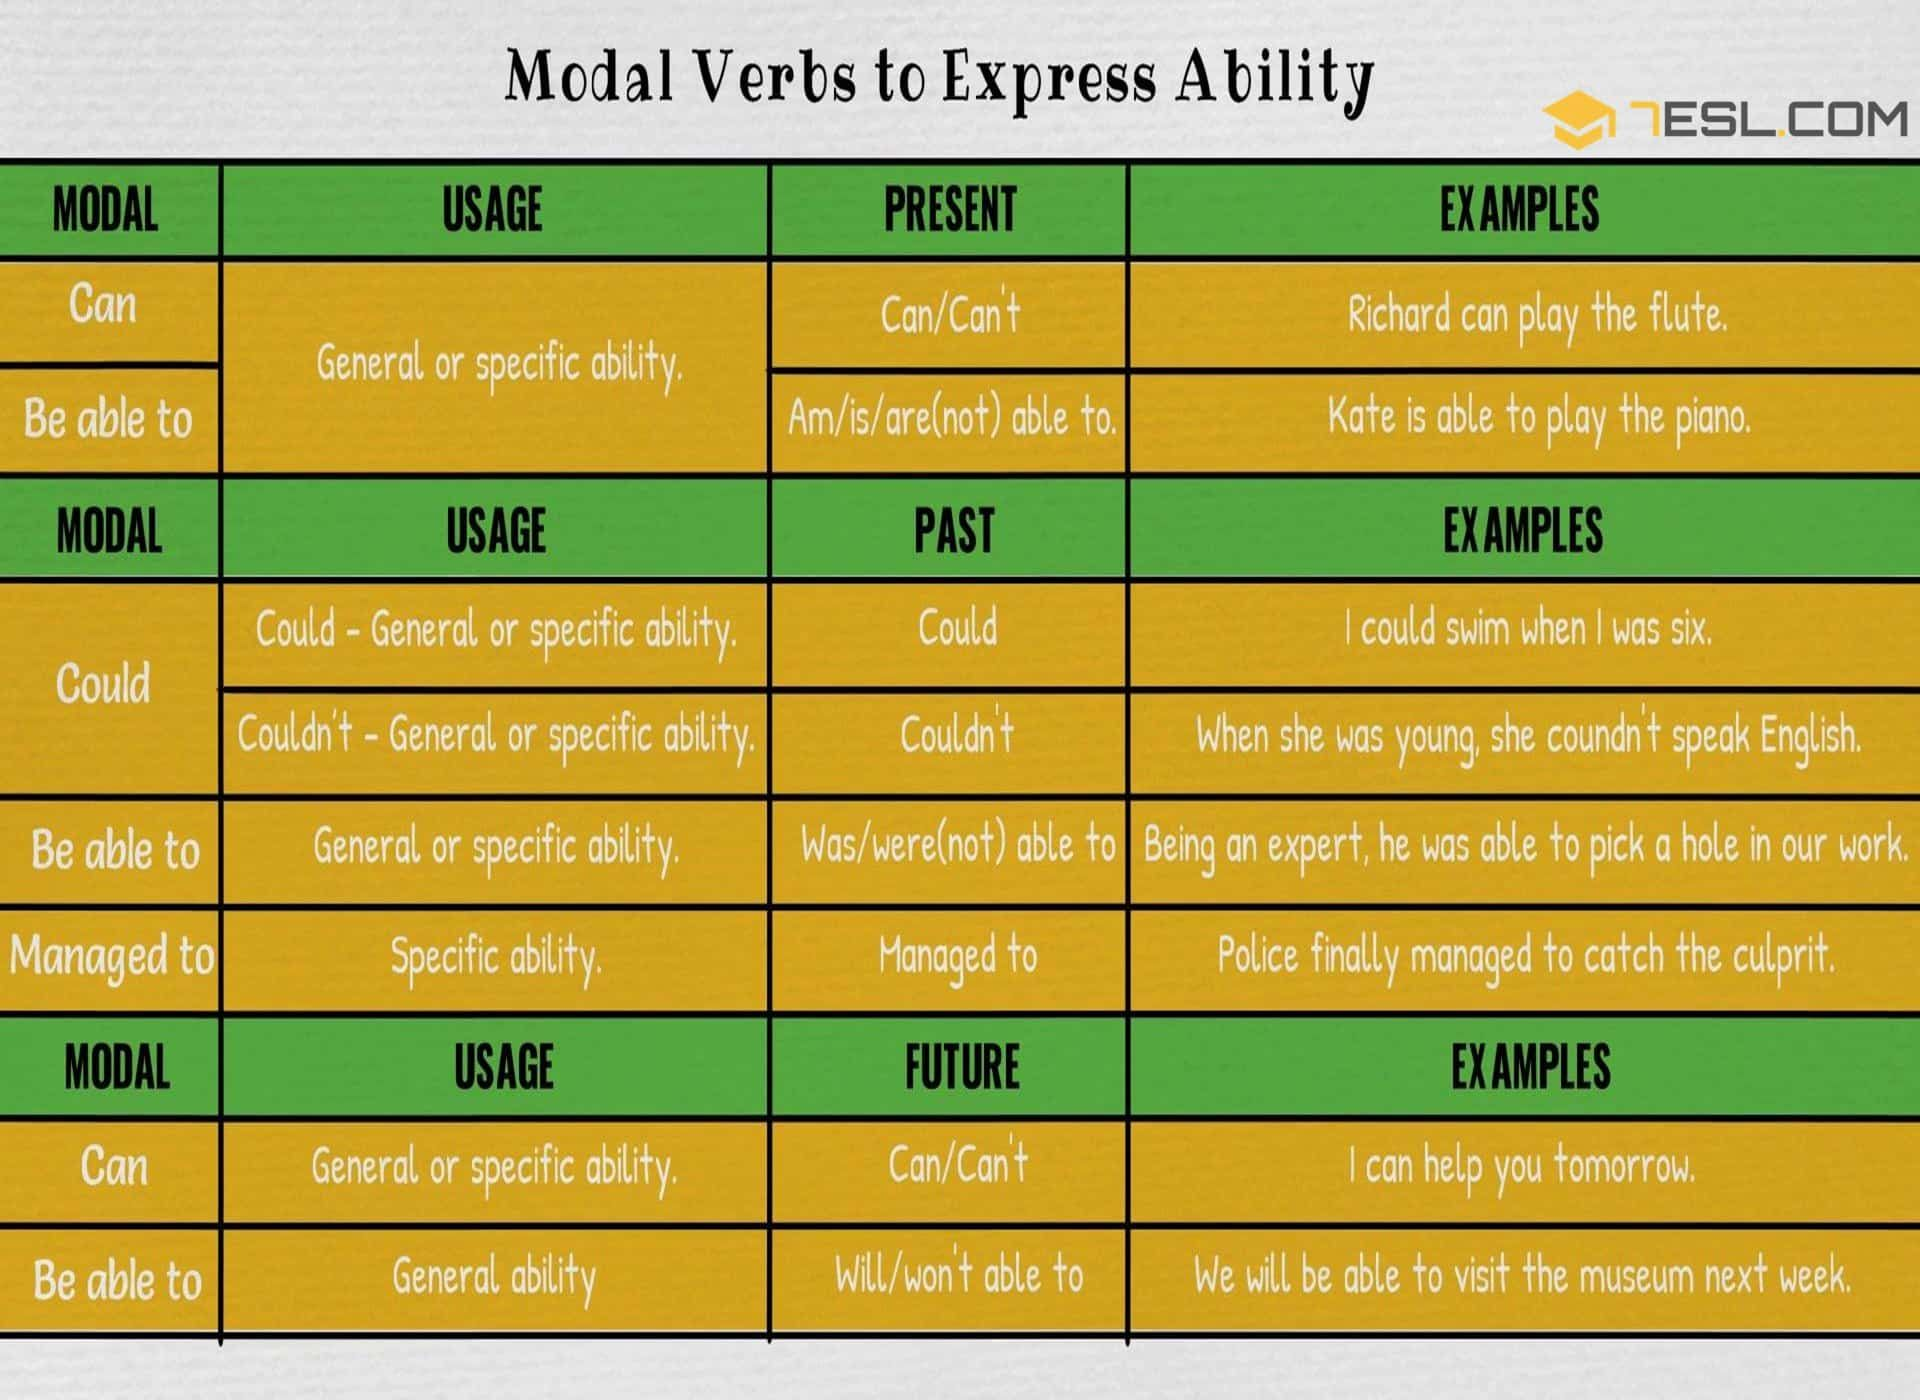 Modals Of Ability Modal Verbs To Express Ability In